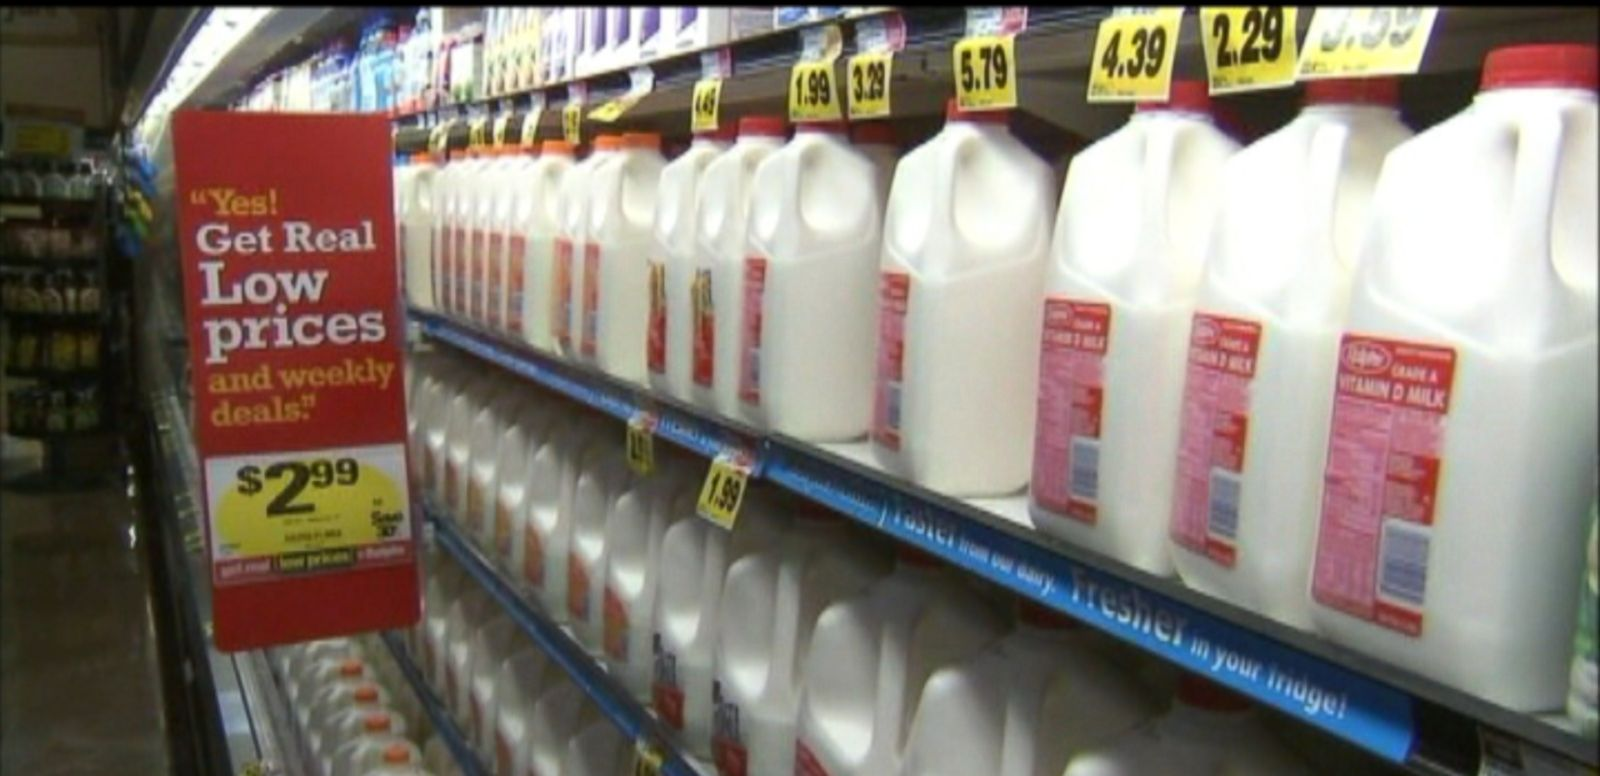 VIDEO: A congressional committee is meeting to discuss dietary guidelines amid new evidence suggesting that milk fat may help prevent heart disease.